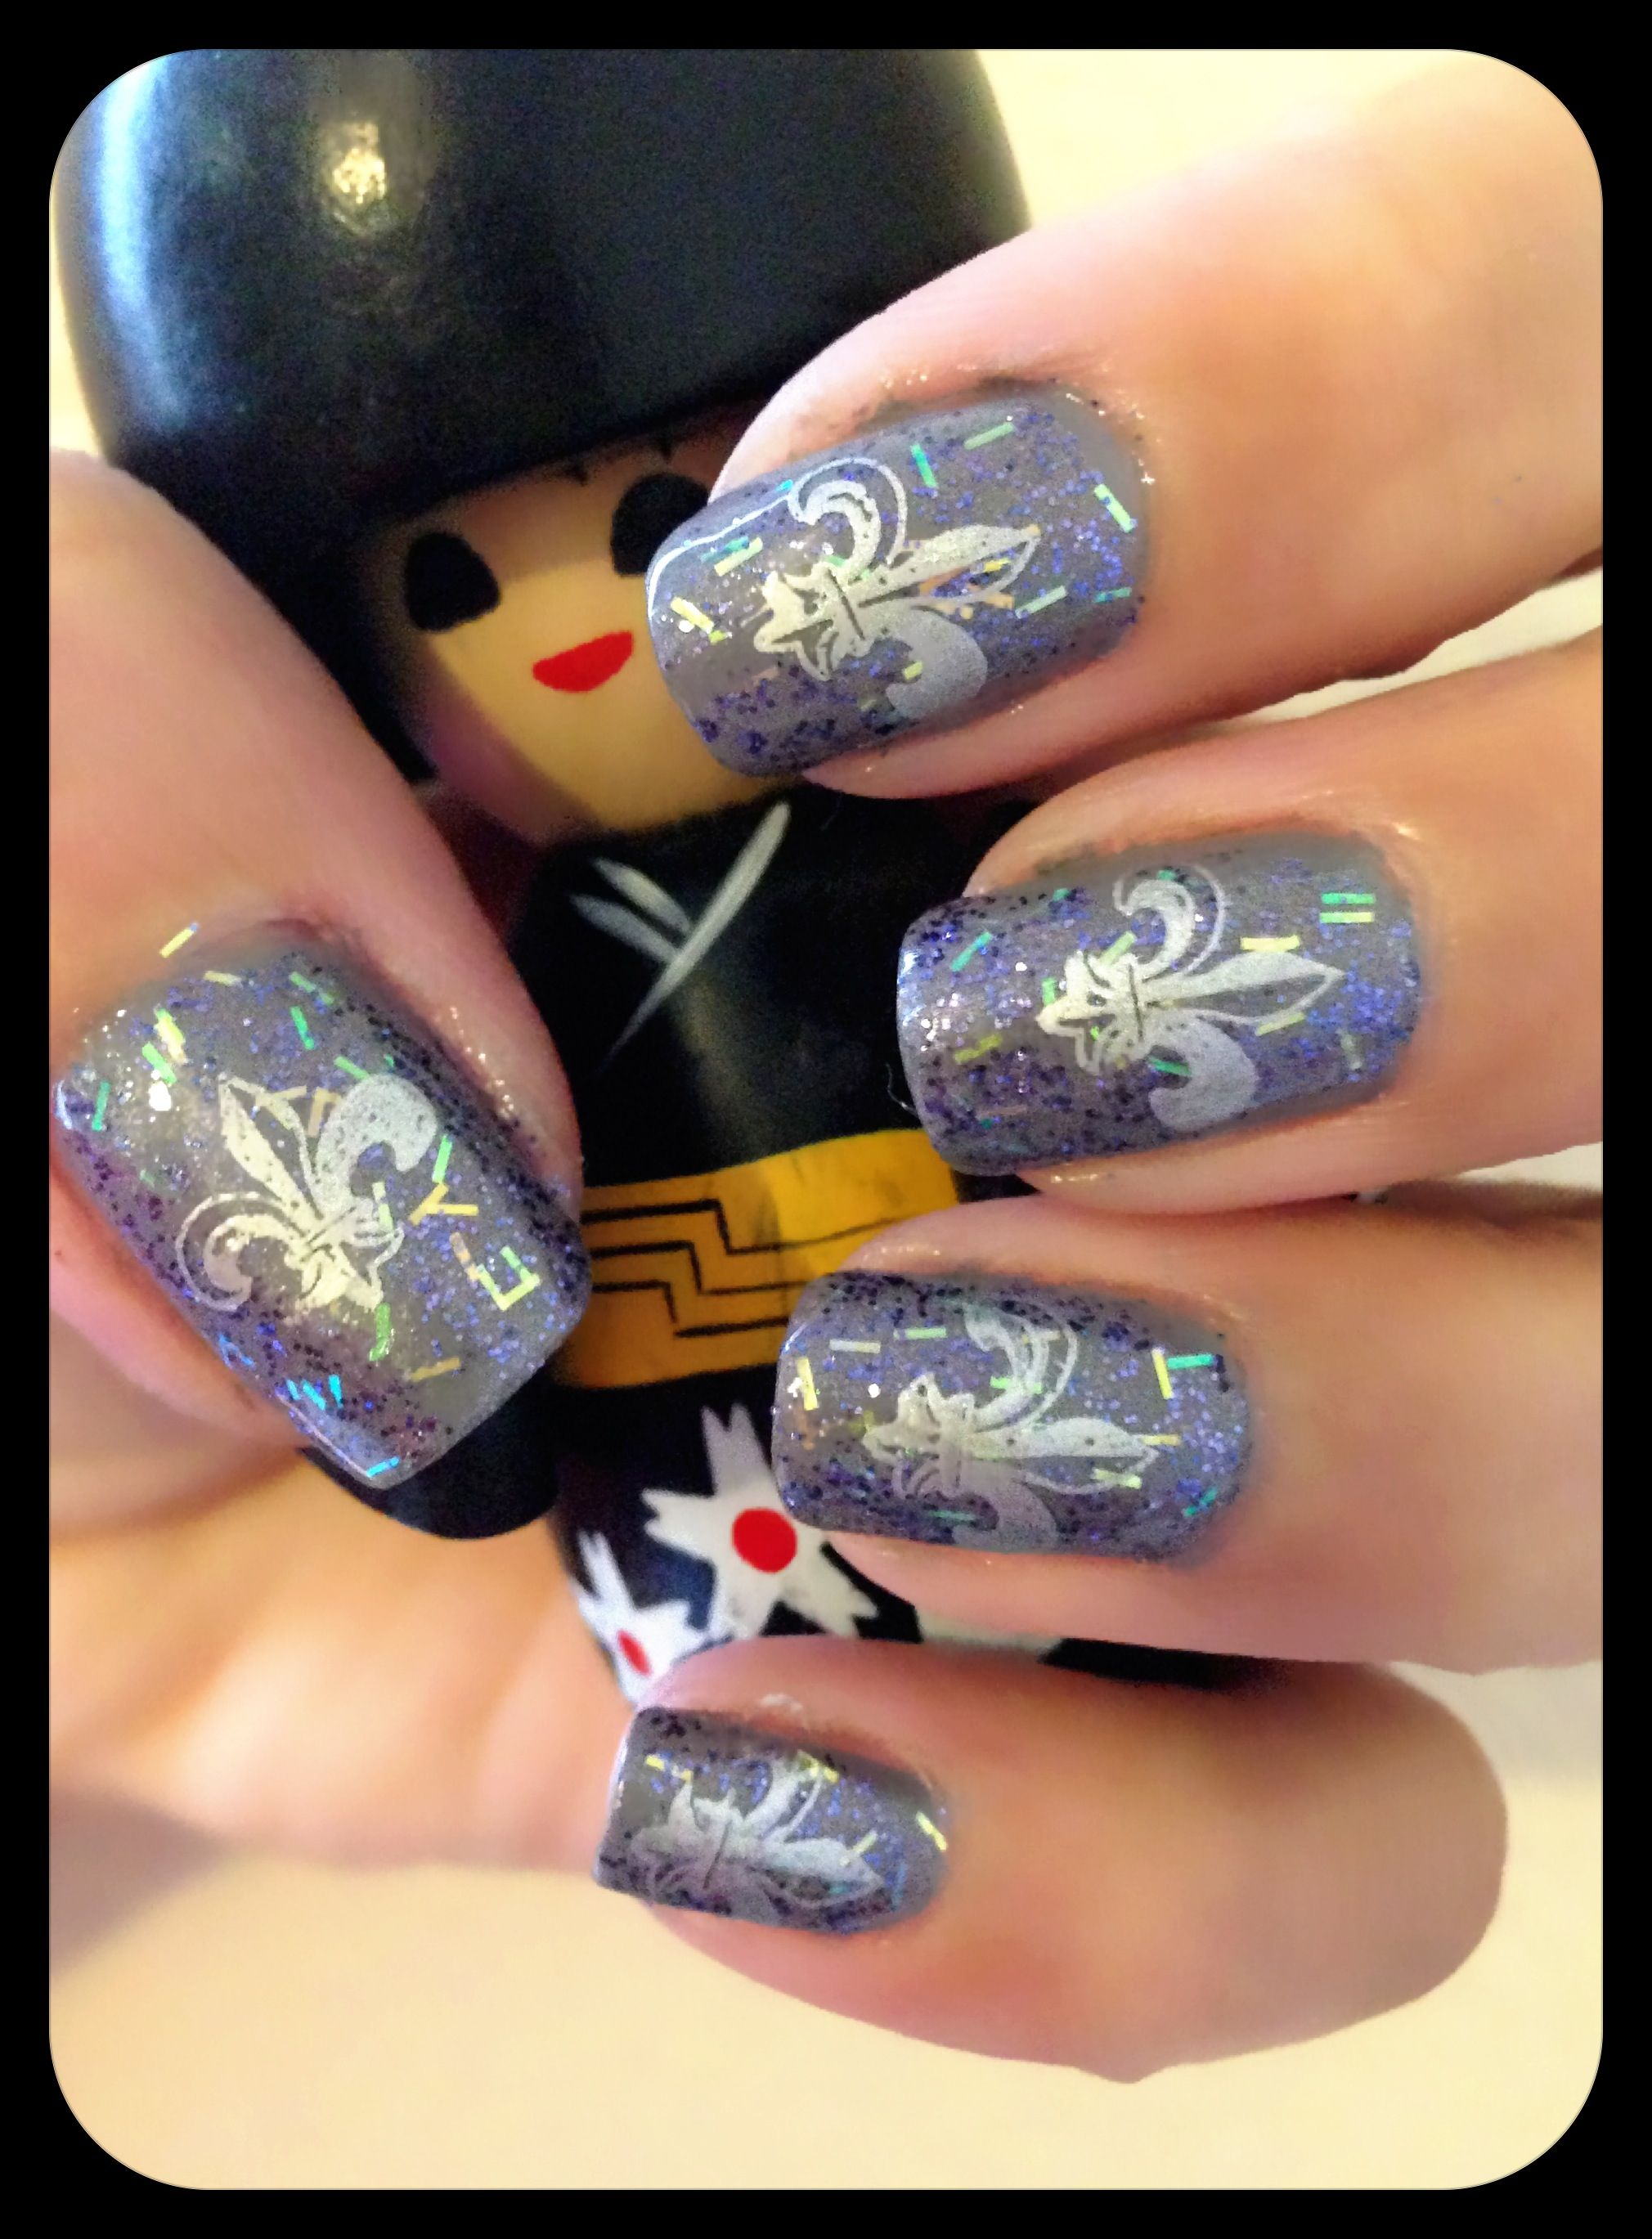 Nail Stamping. Fleur De Lis from plate 35 of the Mash Nails plate ...